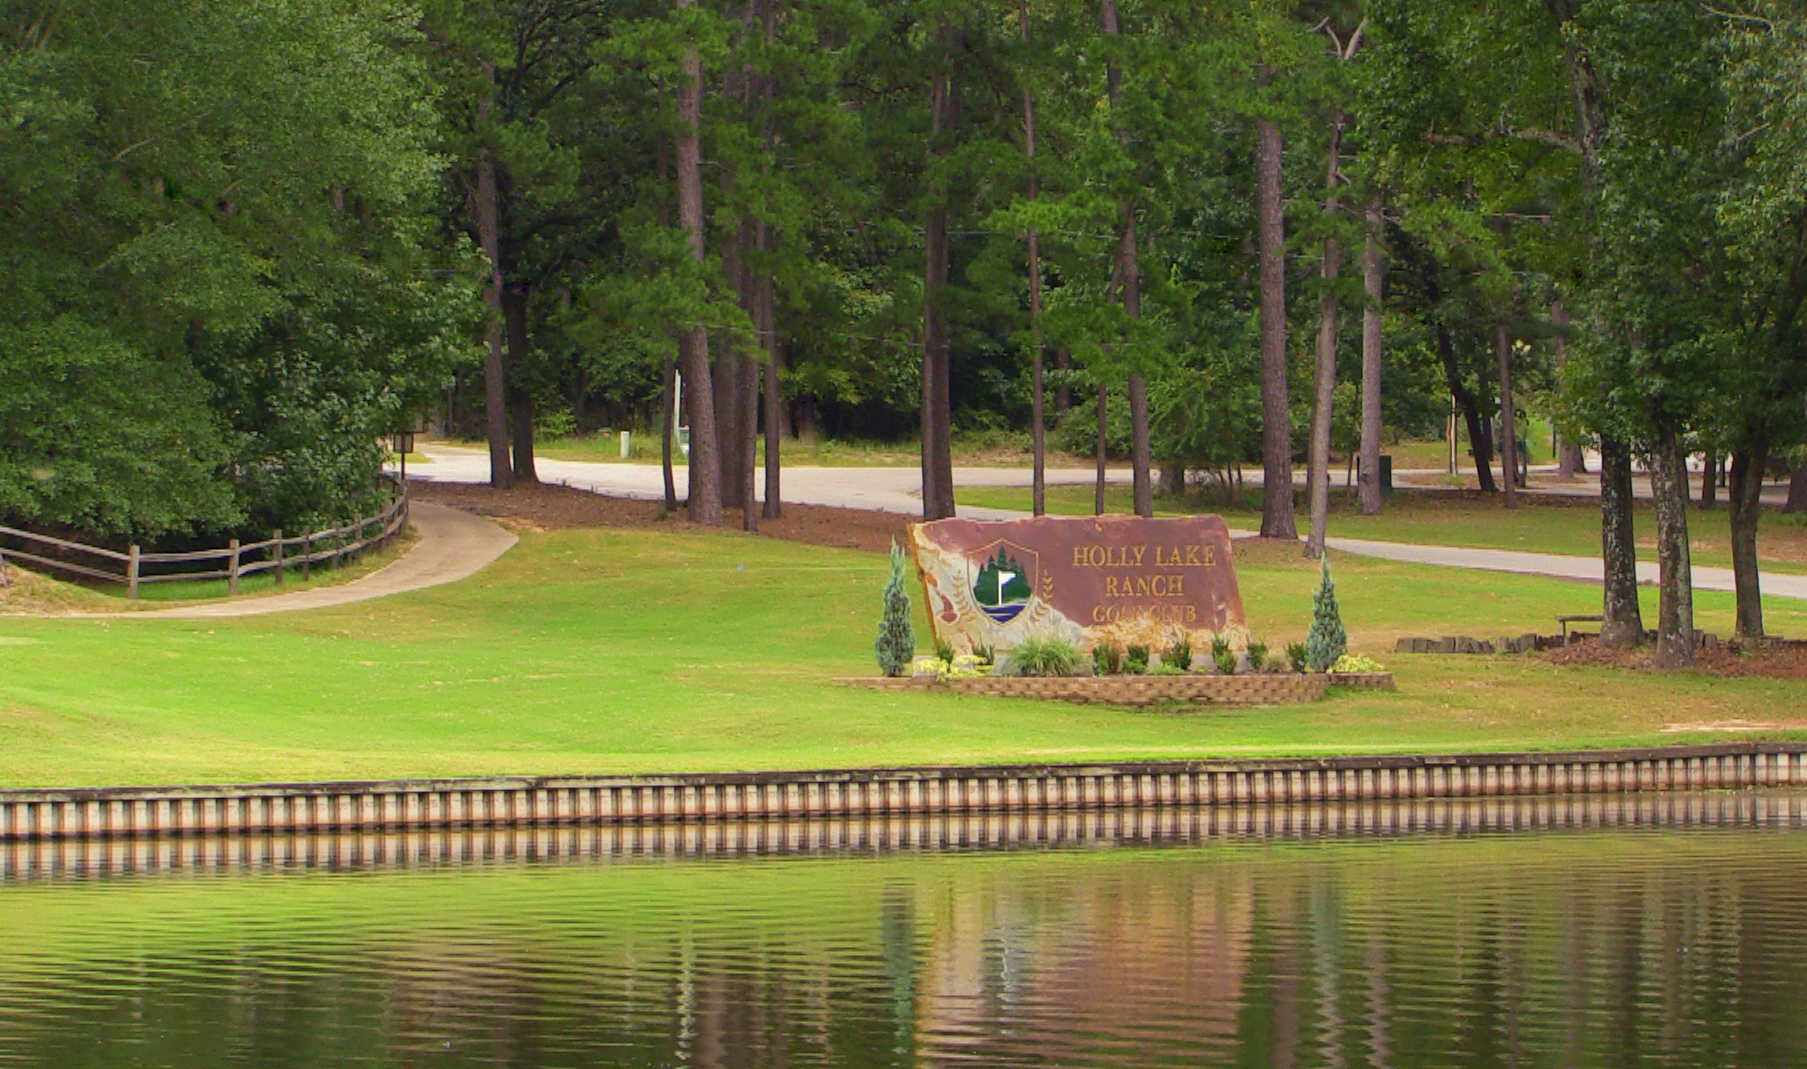 18-Hole Championship Golf Course On 168 Wooded Acres